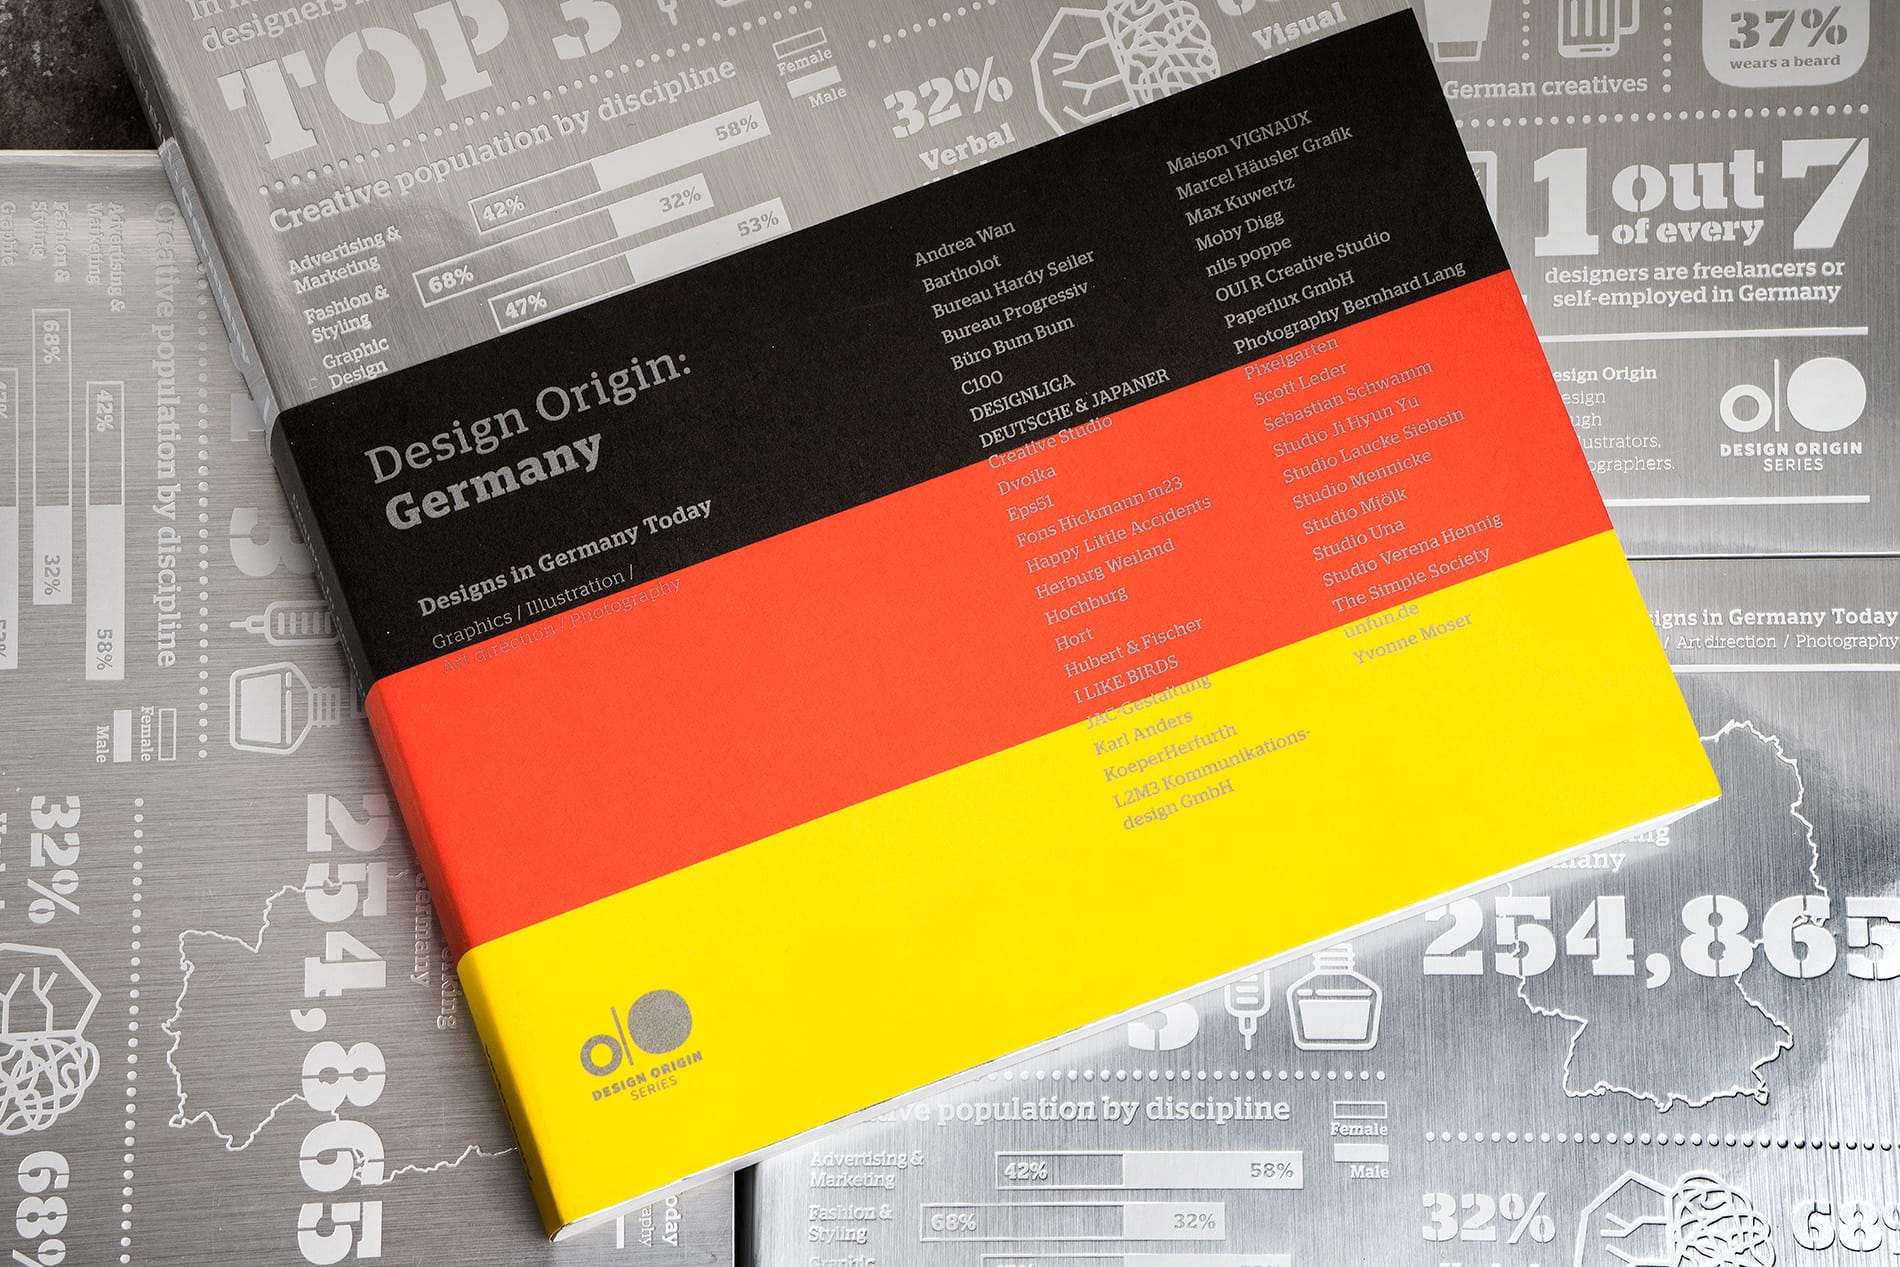 Design Origin: Germany